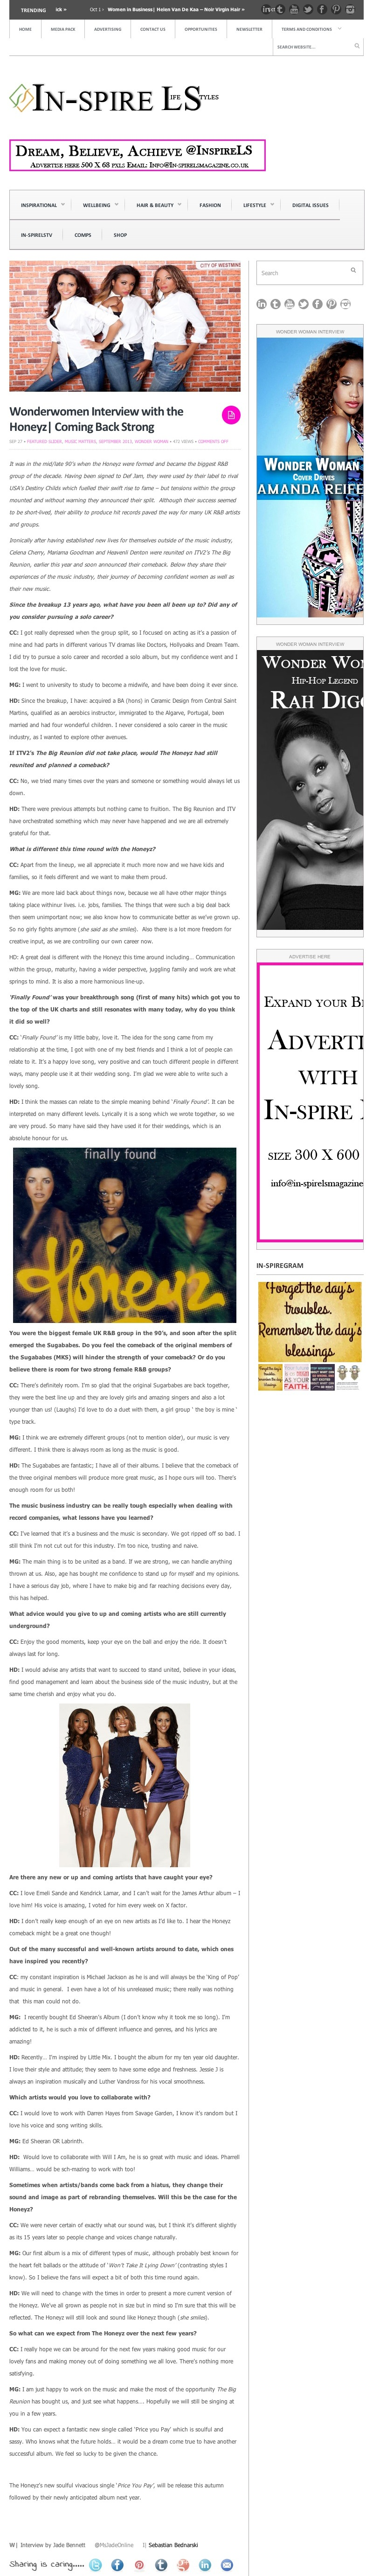 Inspire LS Magazine | London Flair PRls-magazine